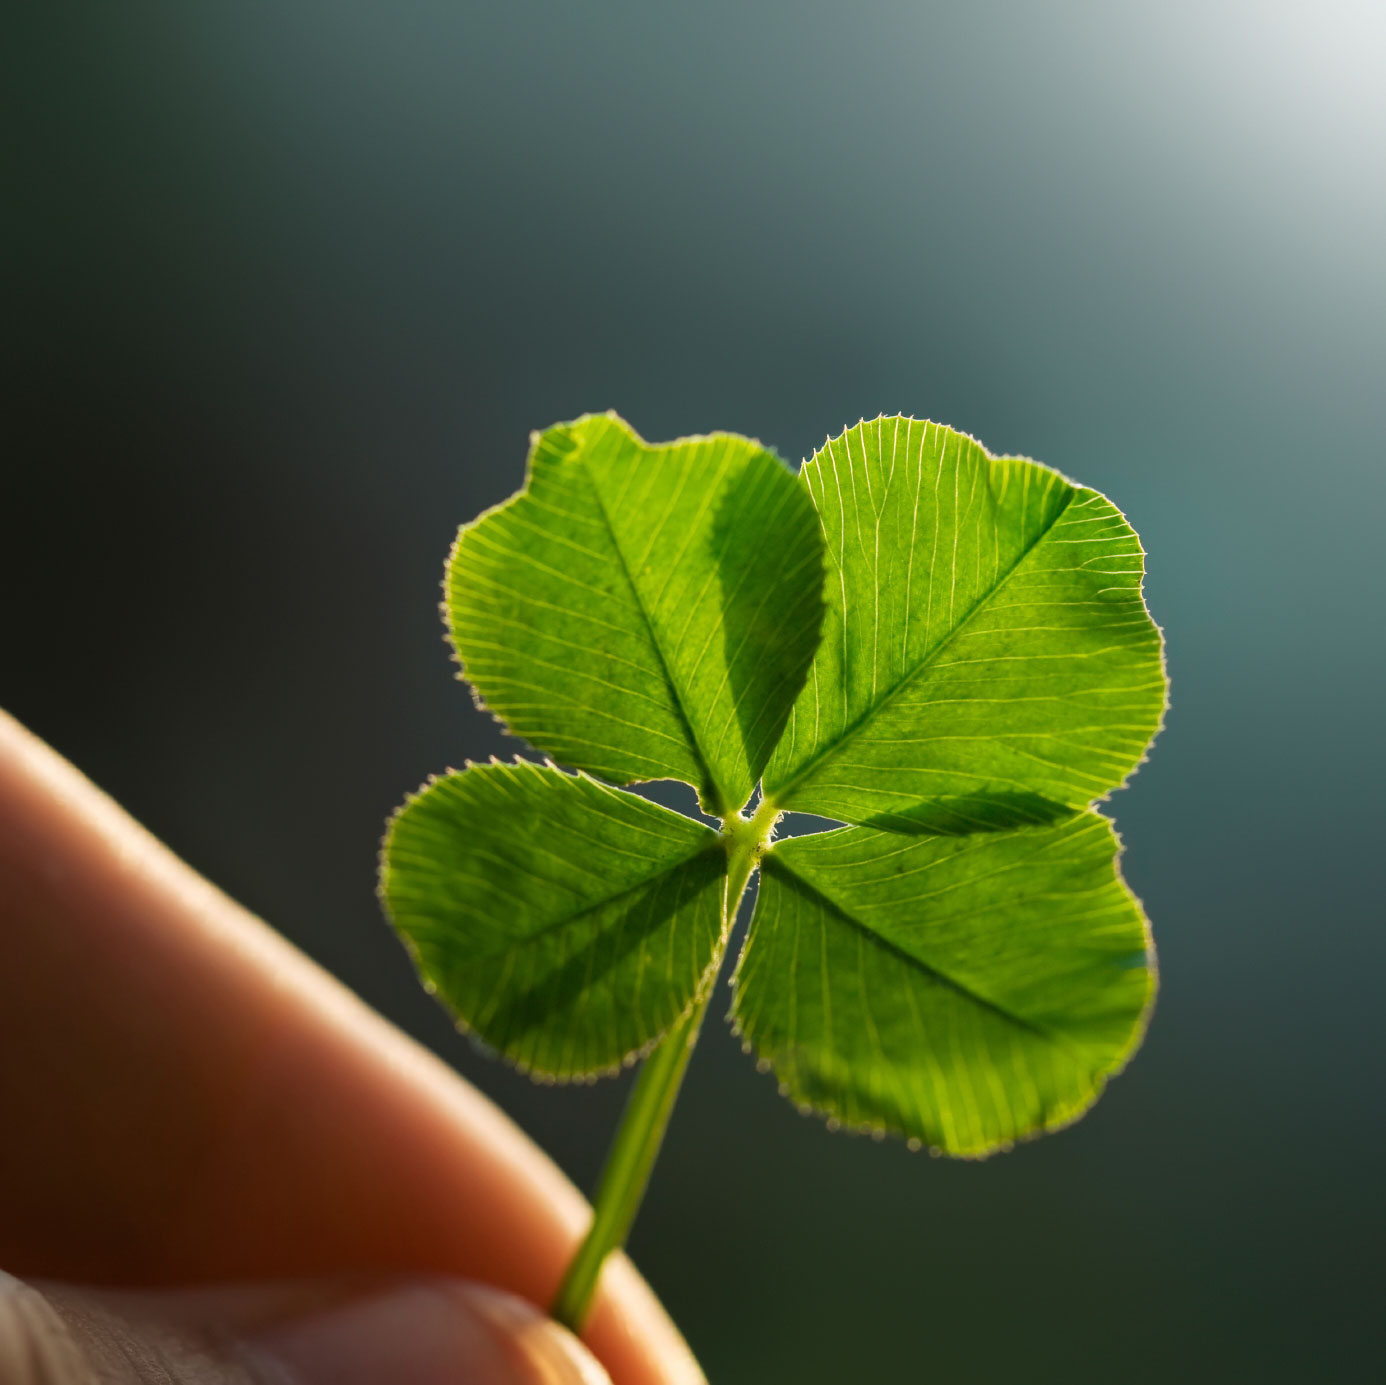 About Four Leaf Clovers Reasons For Finding A Clover With Four